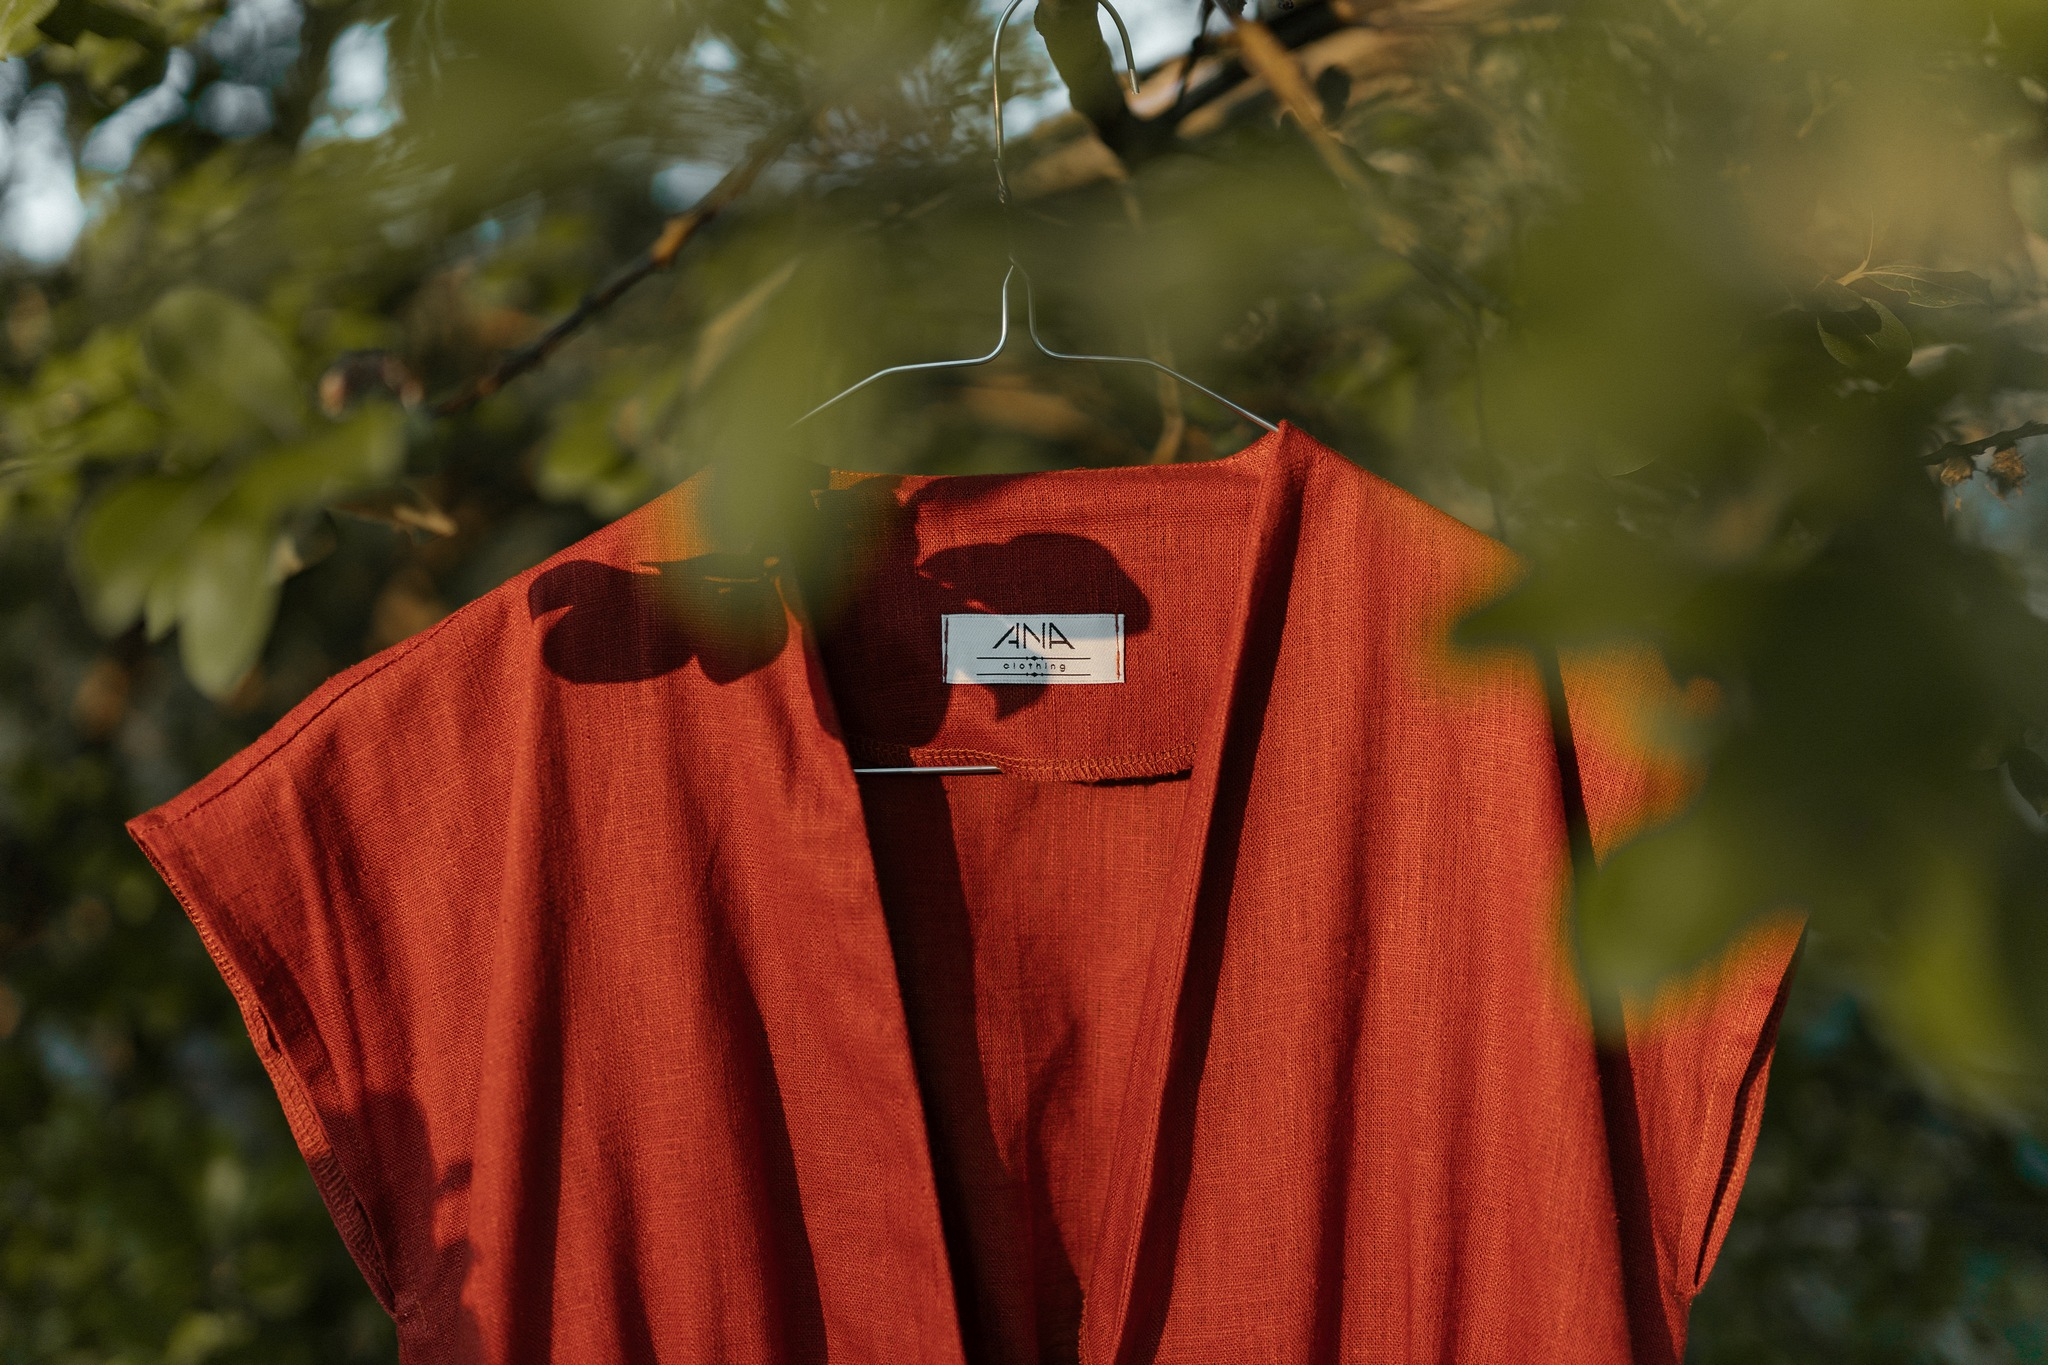 Natural Atelier ANA Clothing 5